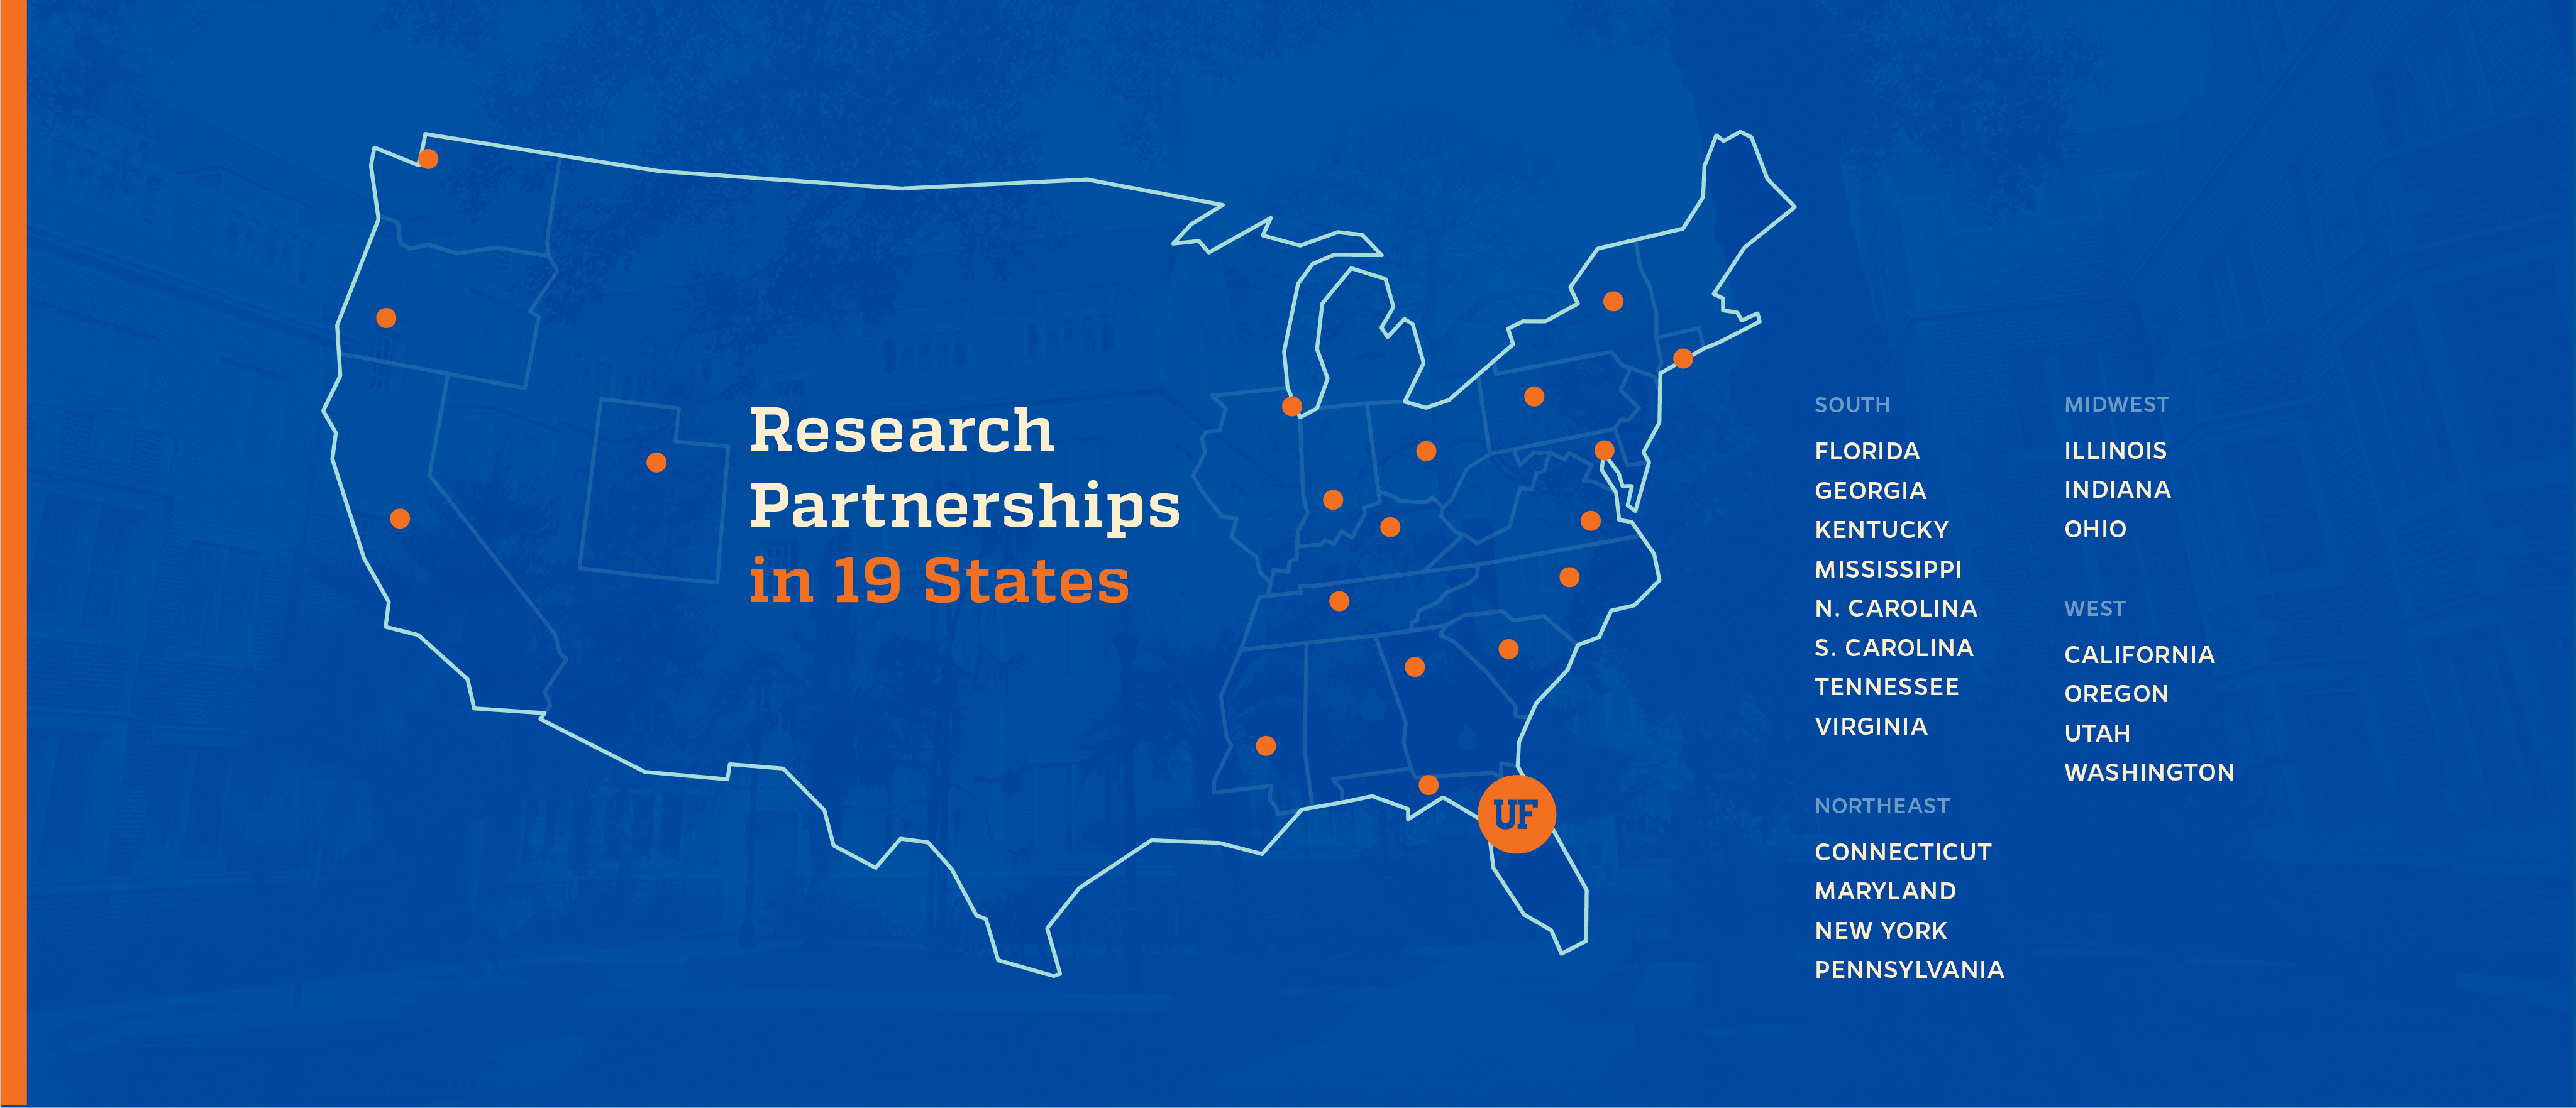 Infographic displaying that The Anita Zucker center has partnerships in 19 states